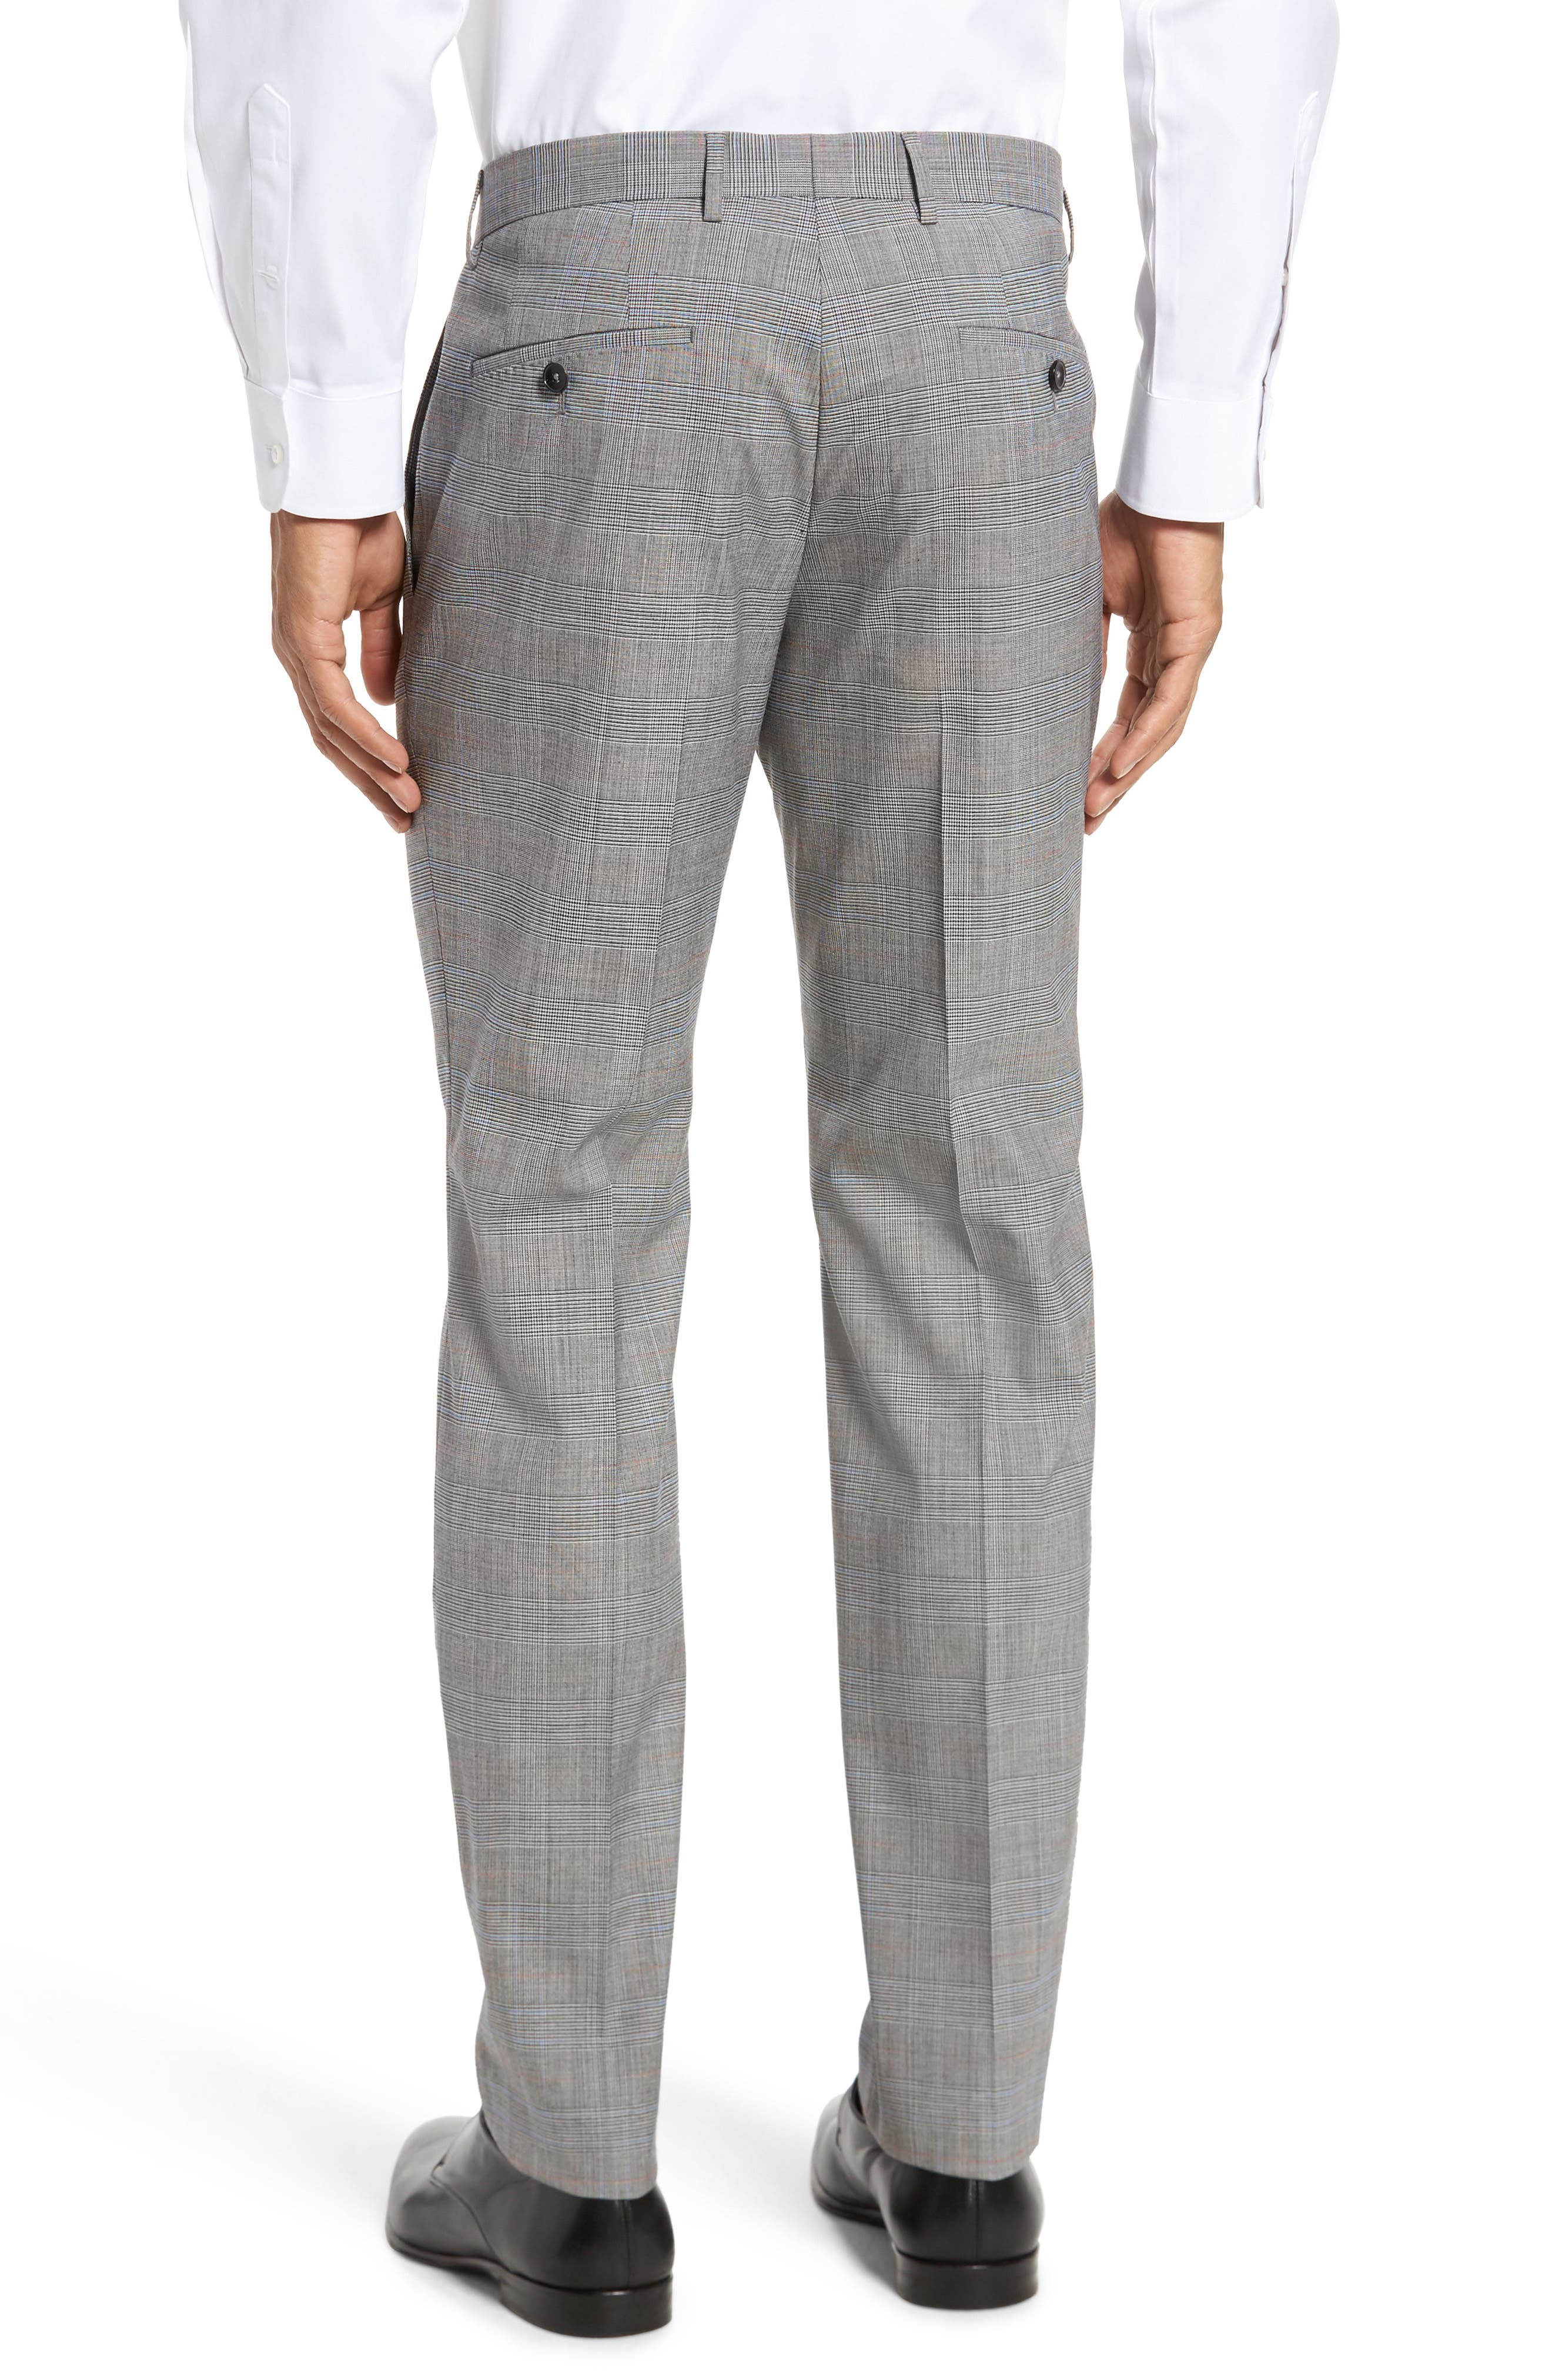 Benso Flat Front Plaid Wool Blend Trousers,                             Alternate thumbnail 2, color,                             Open Grey